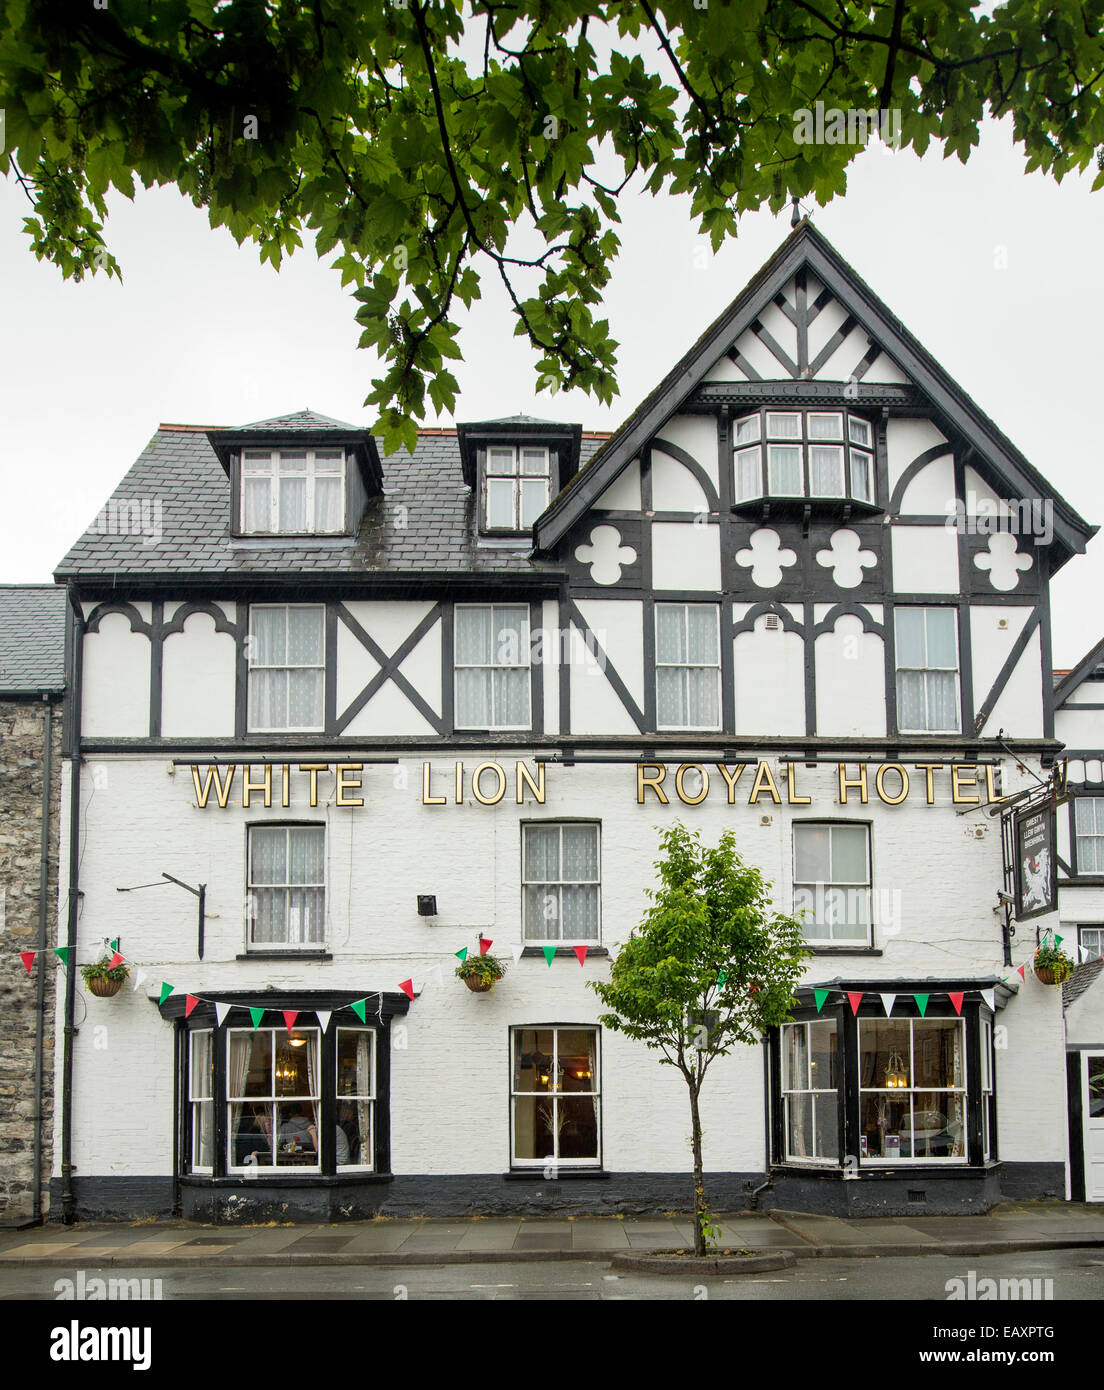 Tudor Facade 18th century white lion royal hotel with ornate black and white